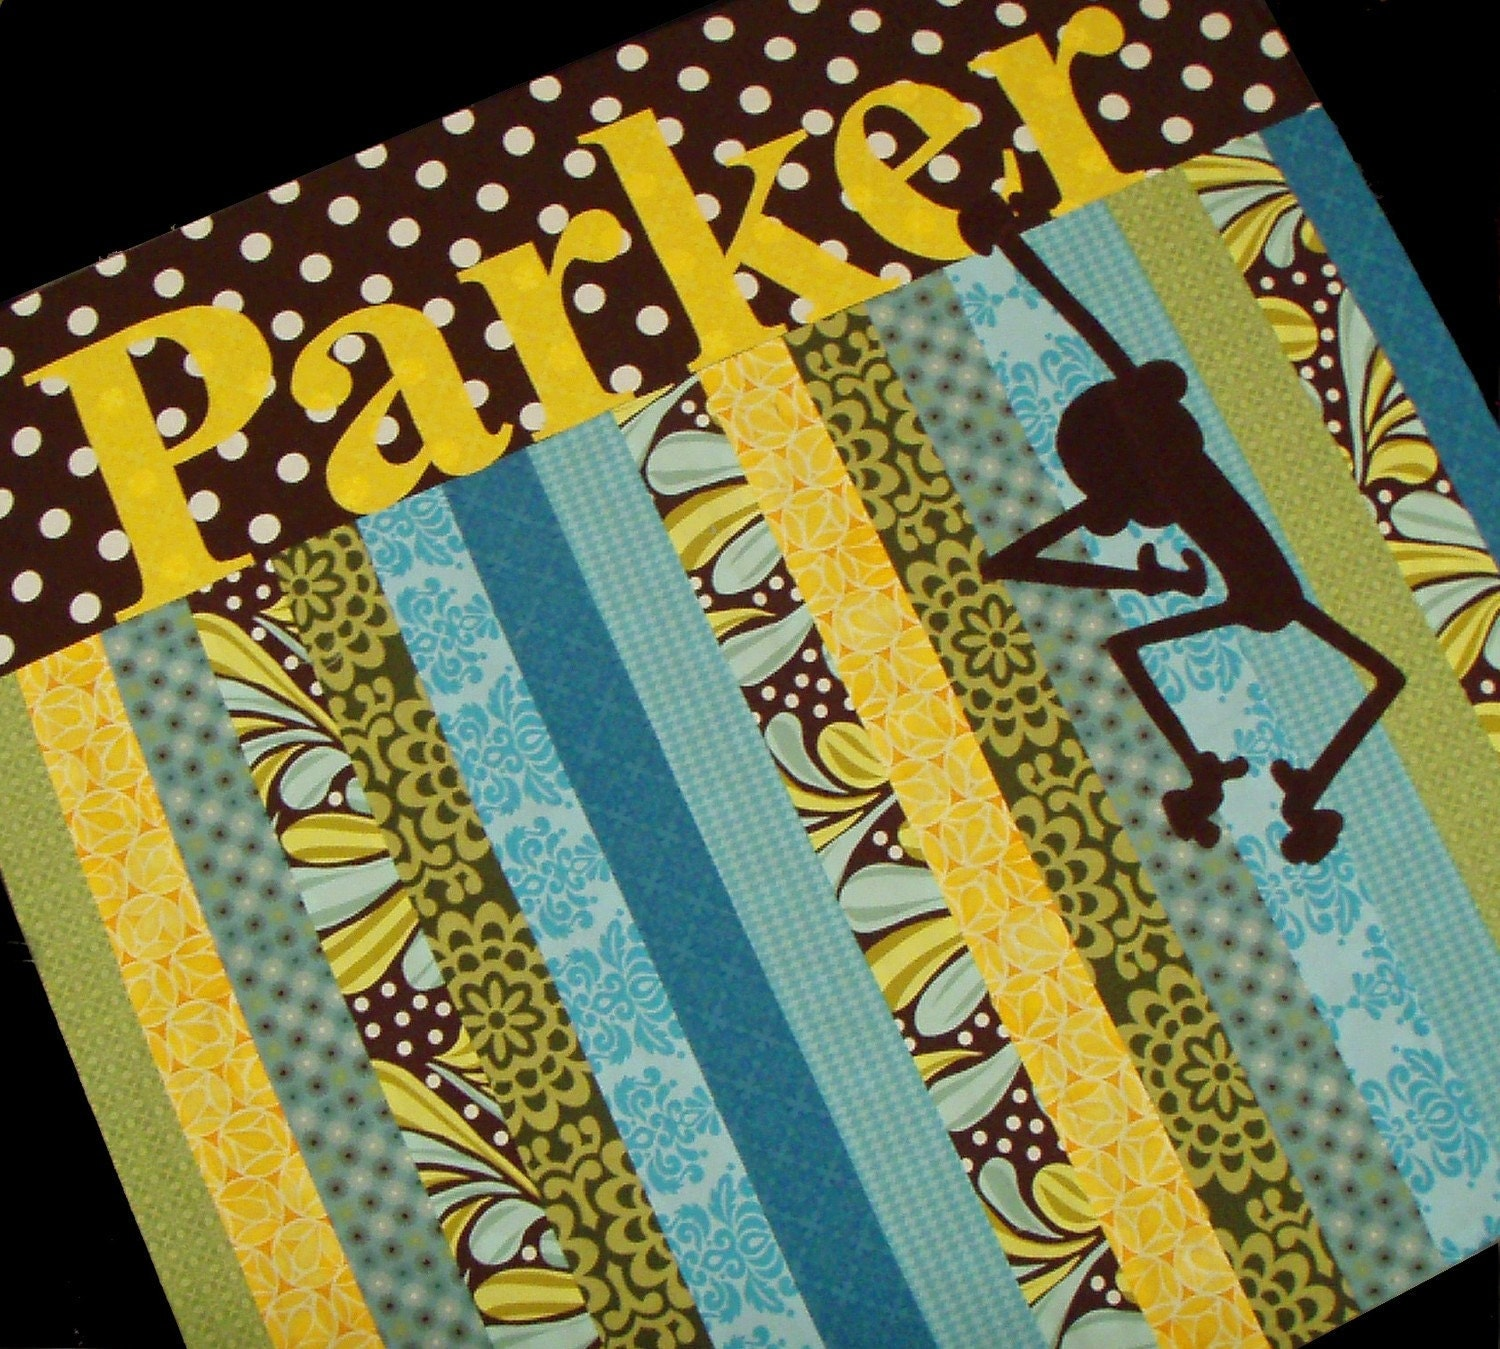 ON SALE Punky Monkey Portable Playmat, soft corduroy monkey, Free Shipping.